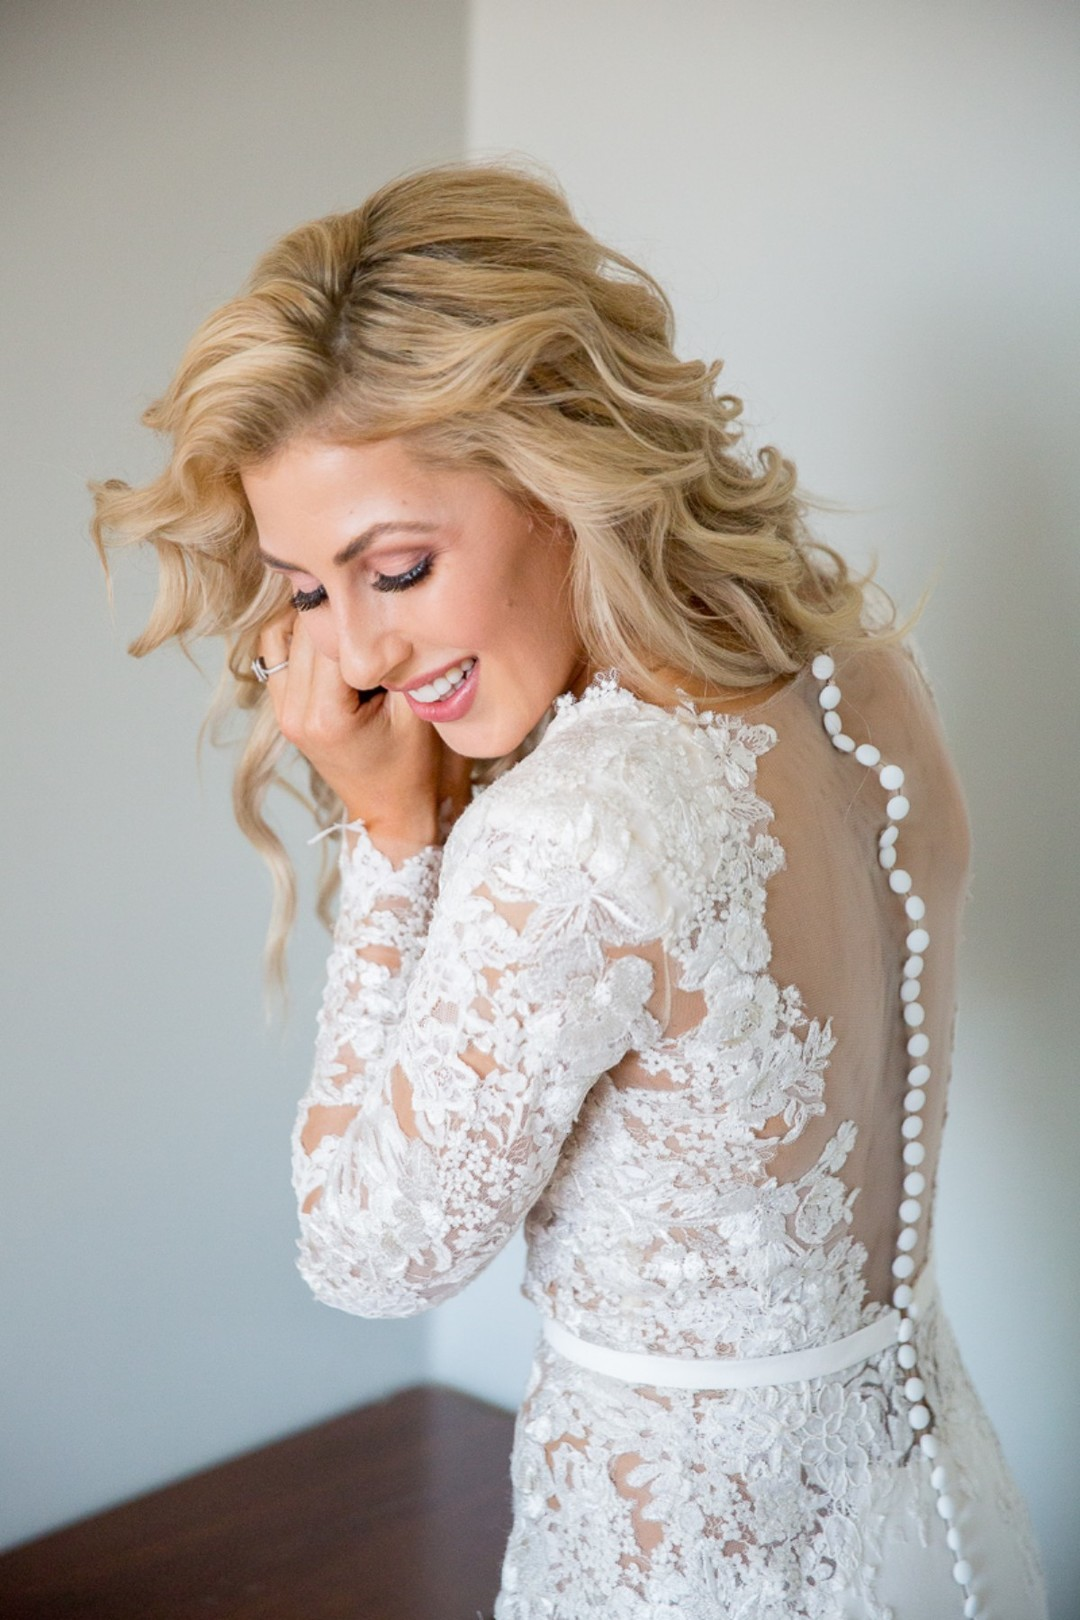 DWTS' Emma Slater and Sasha Farber's Wedding, Bella Blanca Event Center, Emma Slater getting ready for wedding